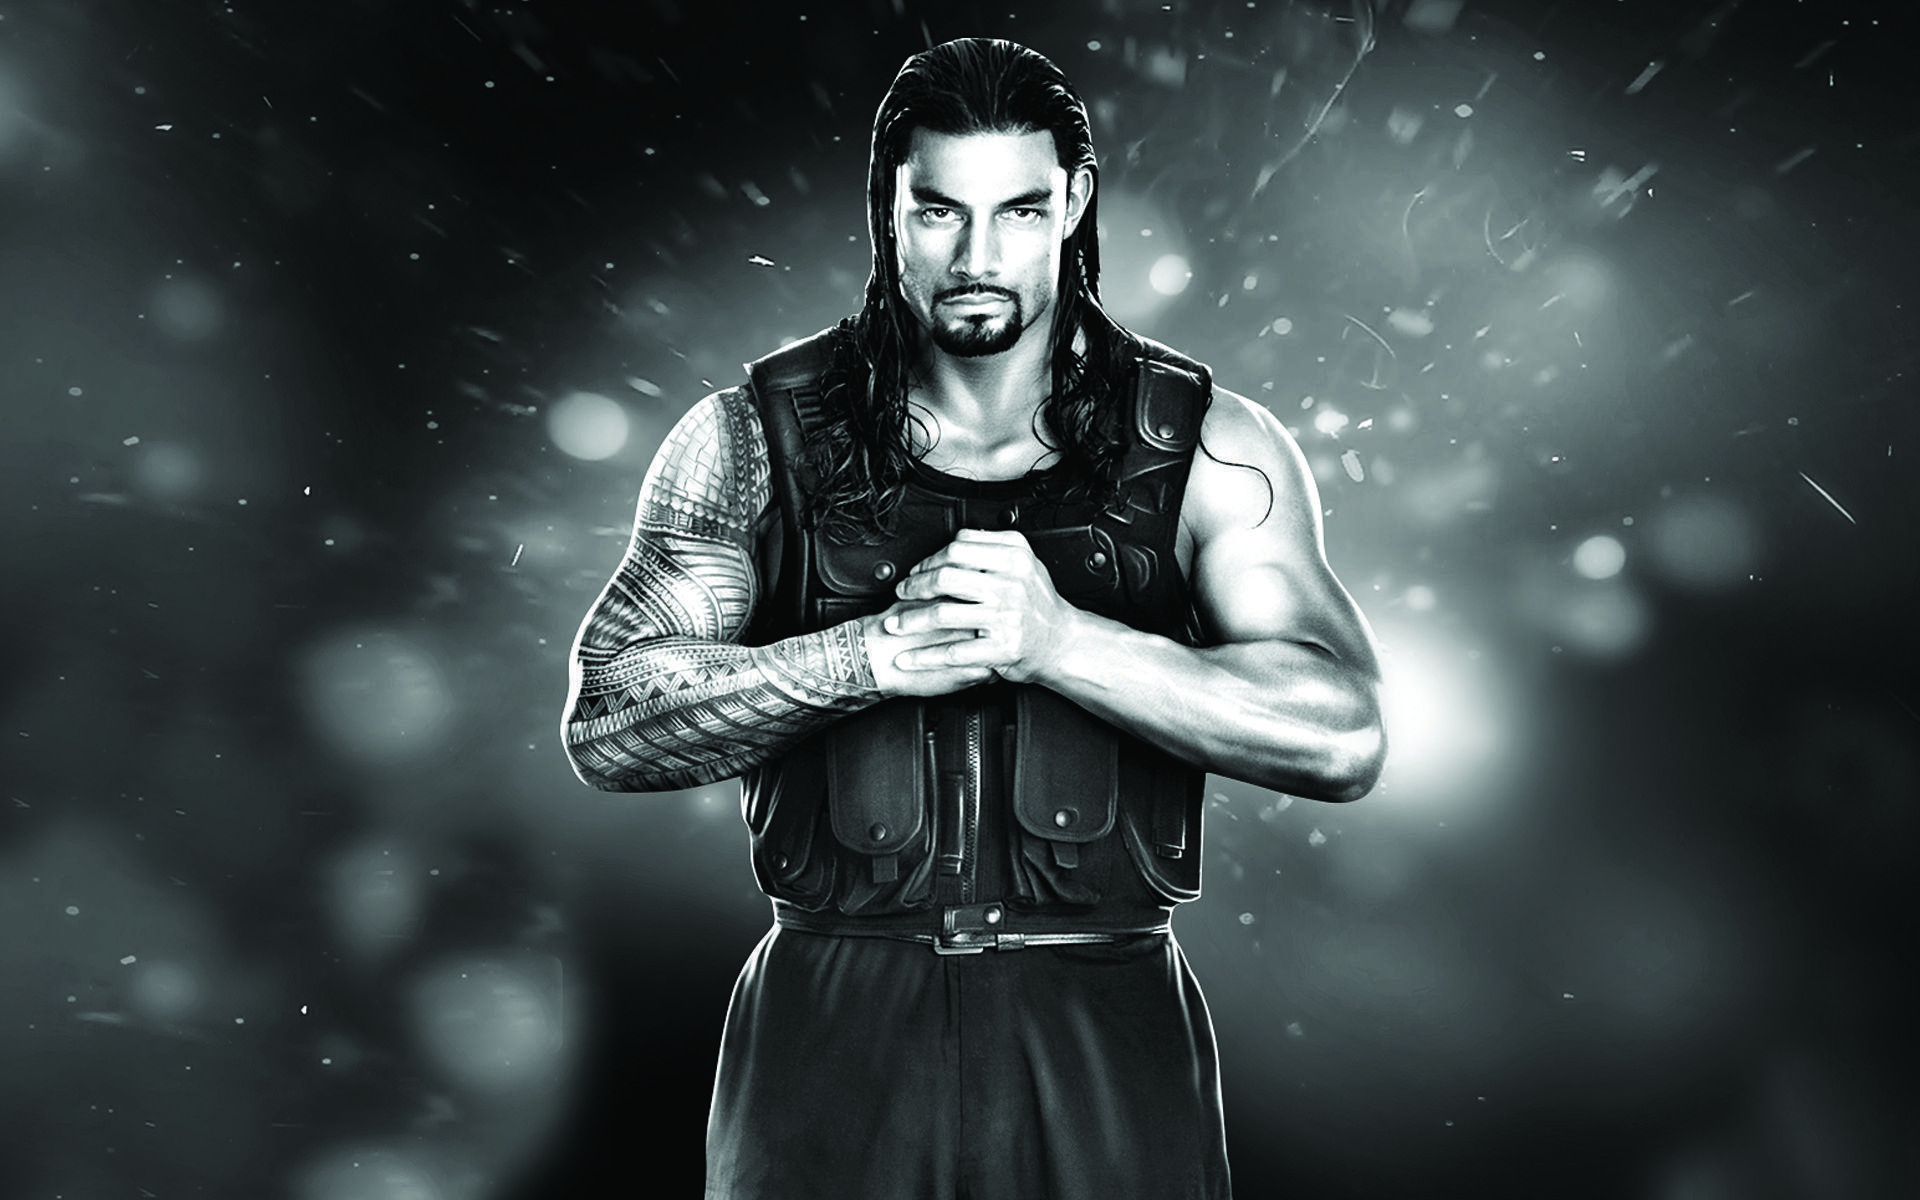 WWE Wallpaper Backgrounds Free